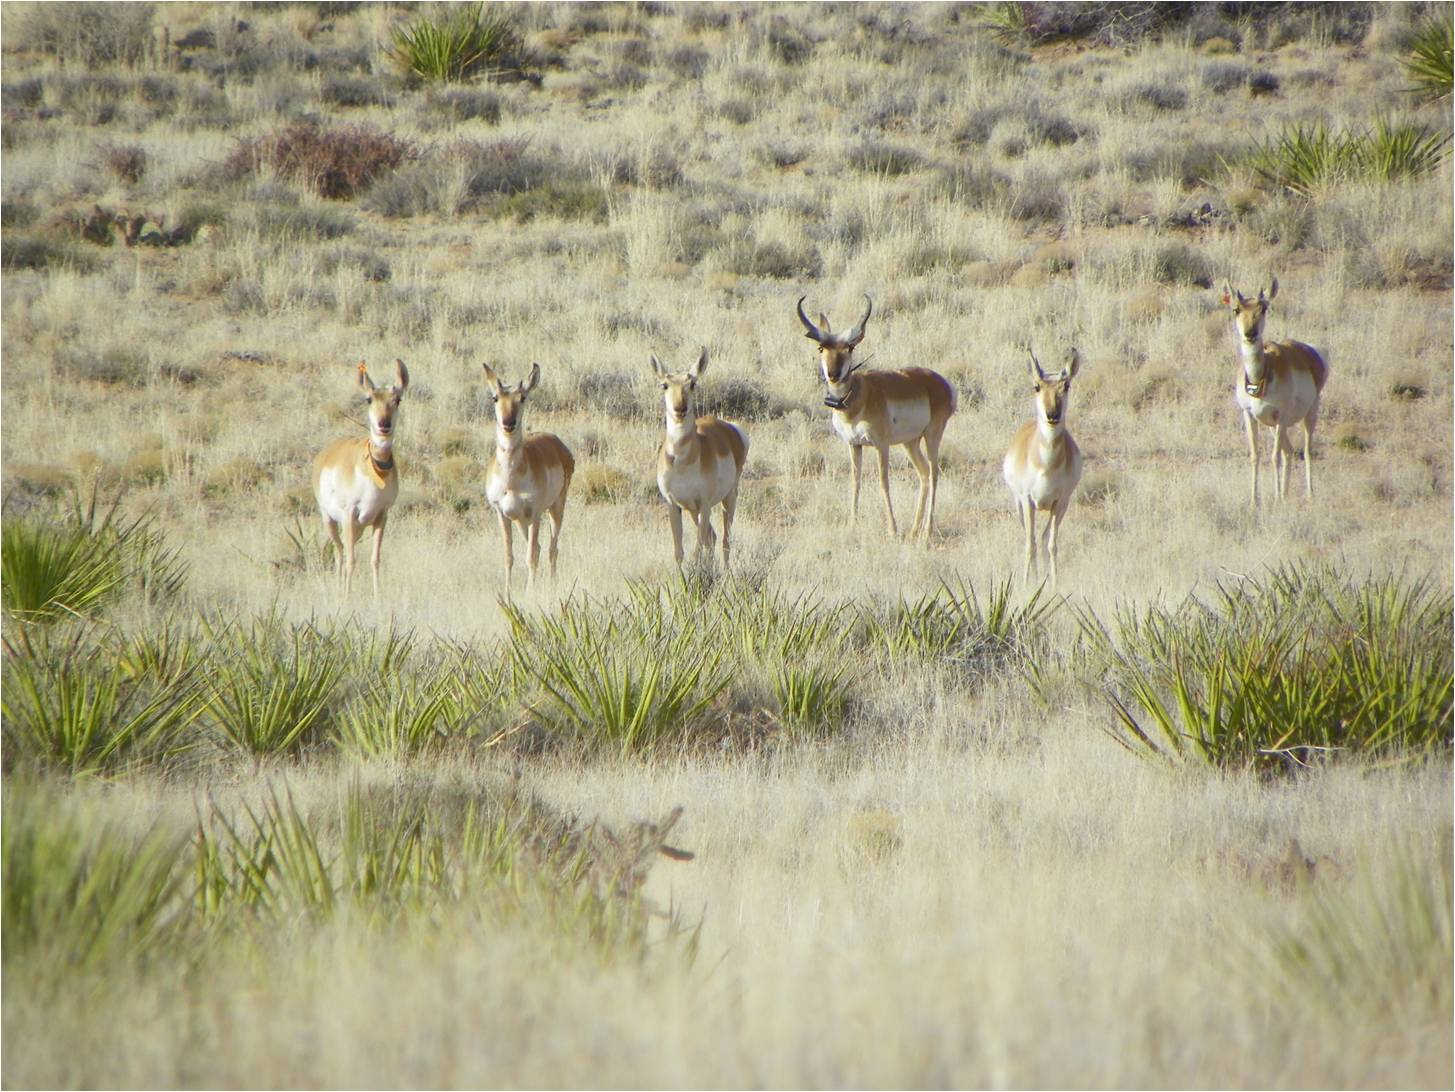 Radiocollared pronghorn on the White Sands Missile Range